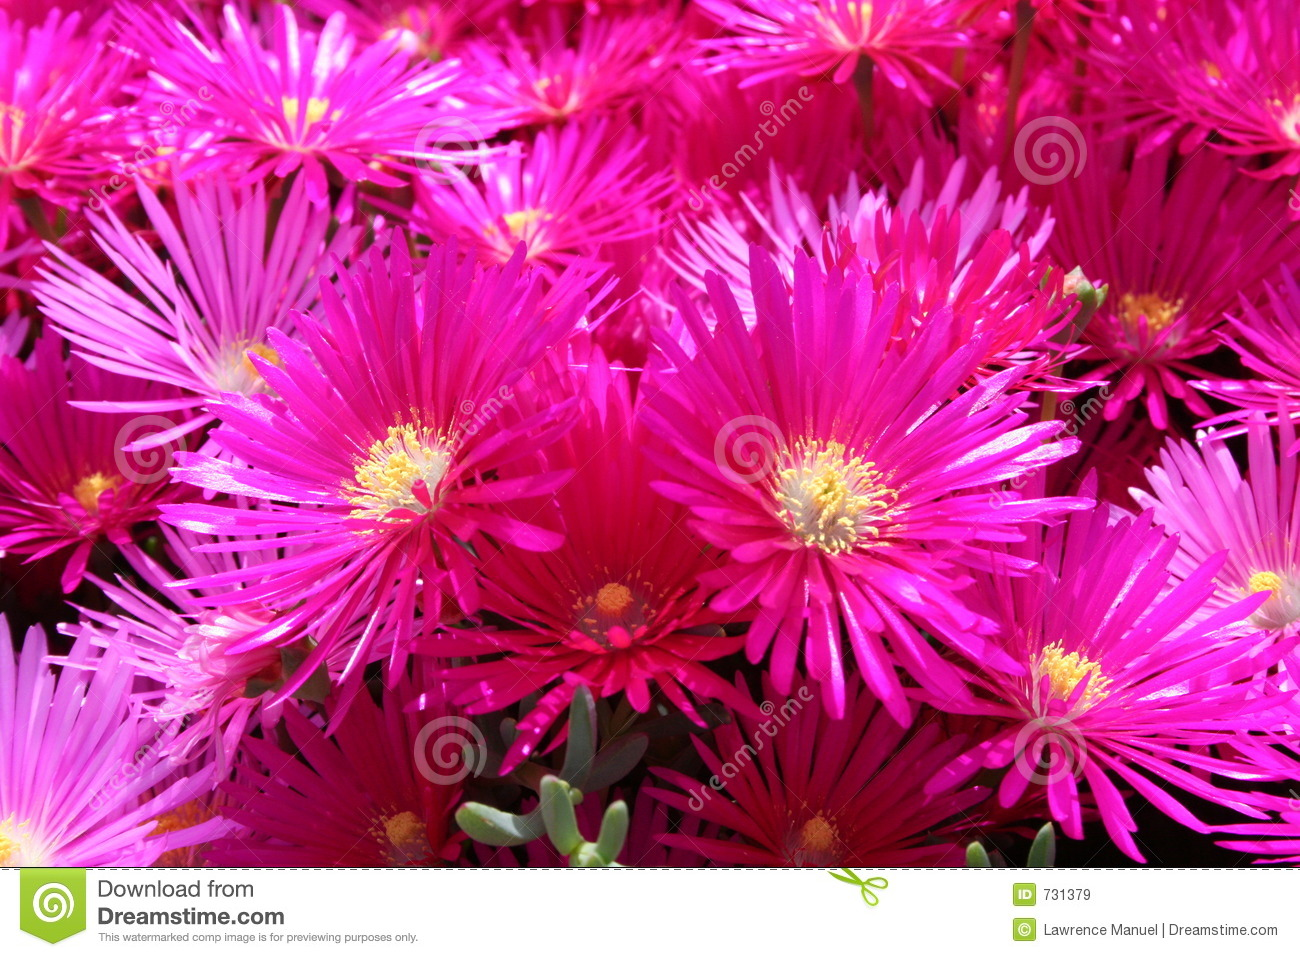 Beautiful Girl Pictures Wallpaper Bright Colored Flowers Stock Image Image Of Lawrence